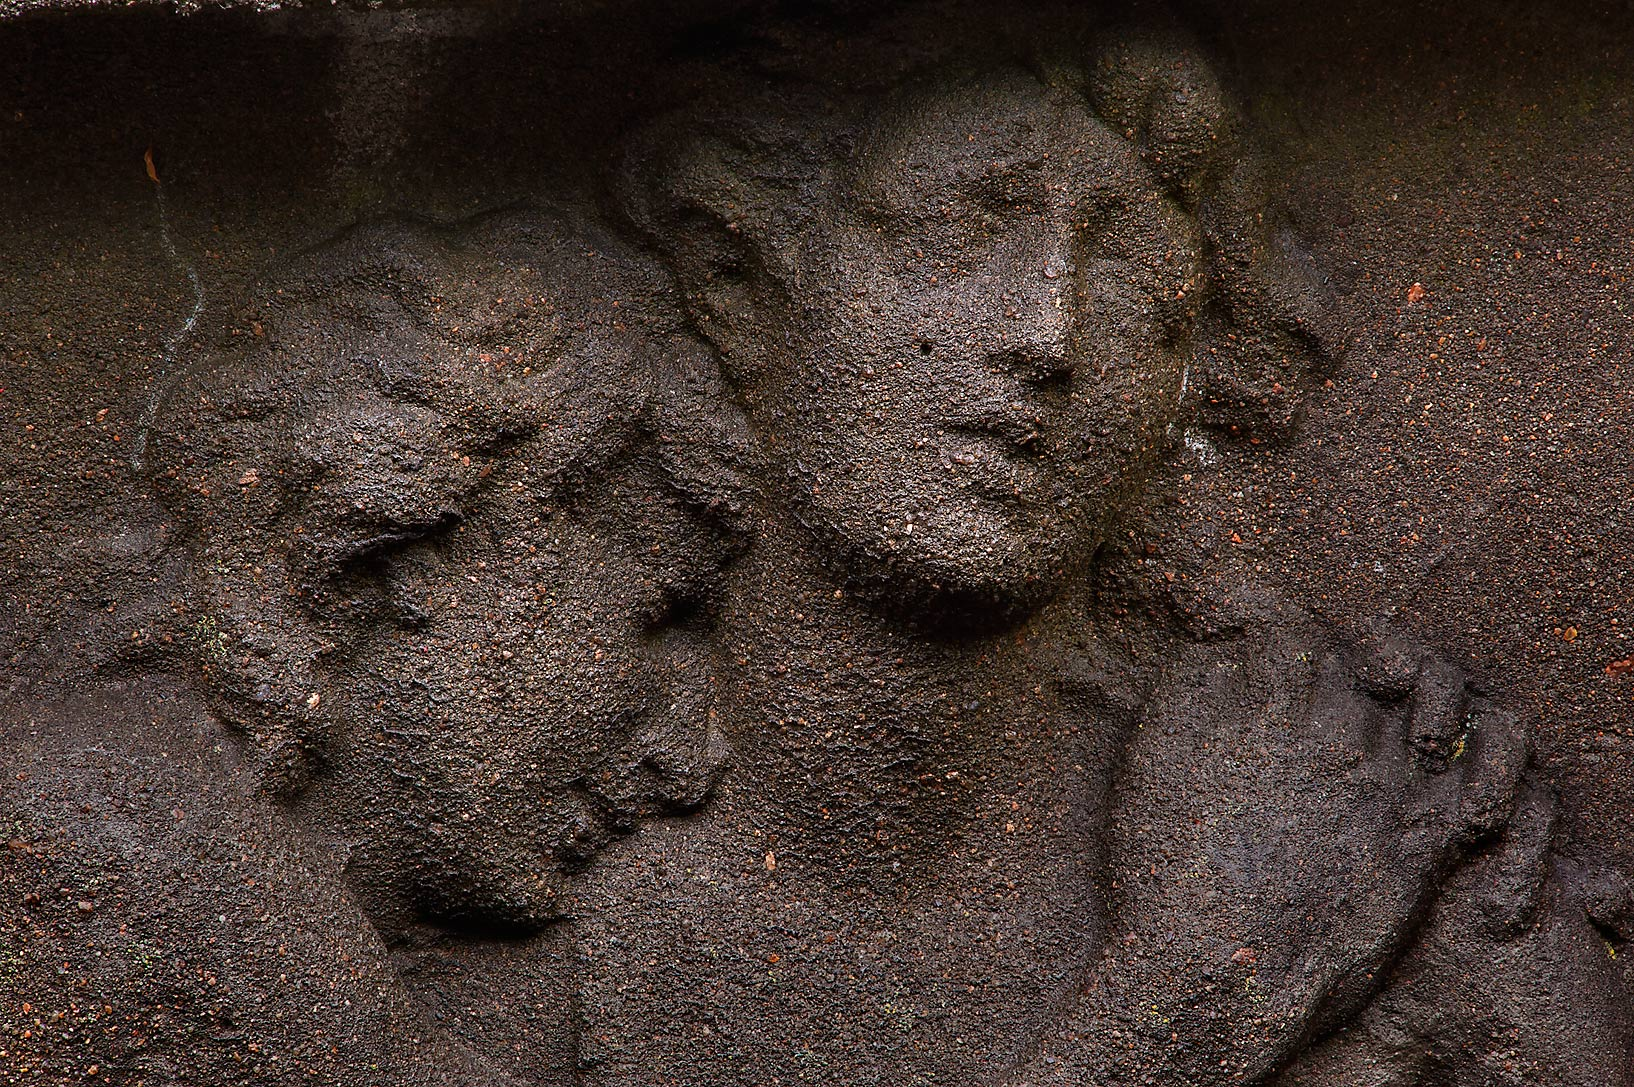 Clasping figures on a tomb in Necropolis of...Cemetery). St.Petersburg, Russia